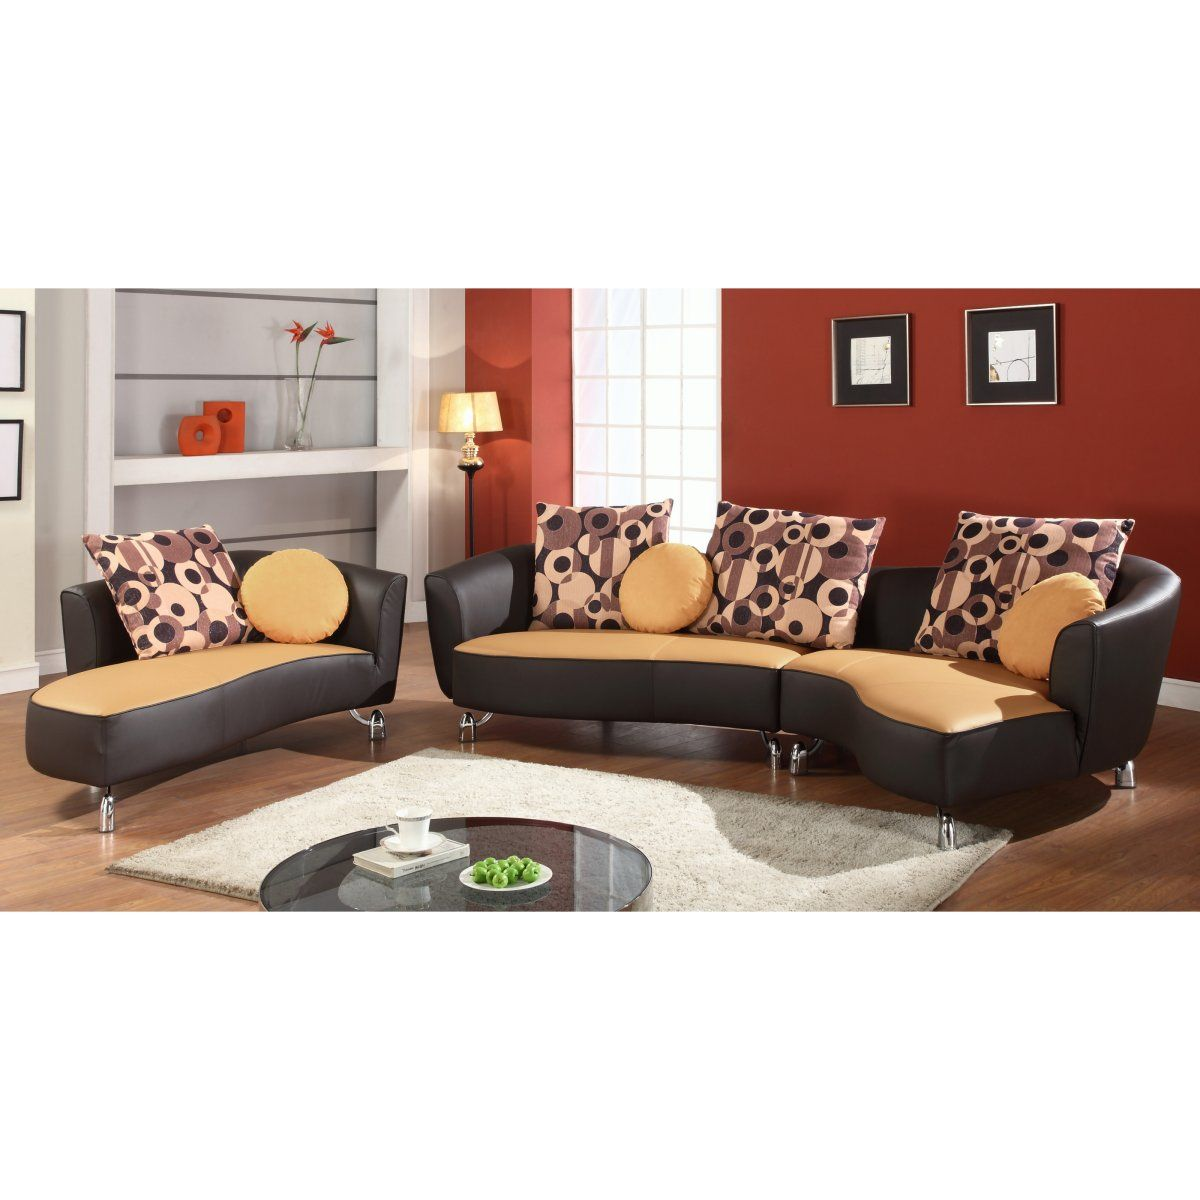 Awesome Astounding Accent Pillows For Leather Sofa In Living Room Decoration :  Extraordinary Living